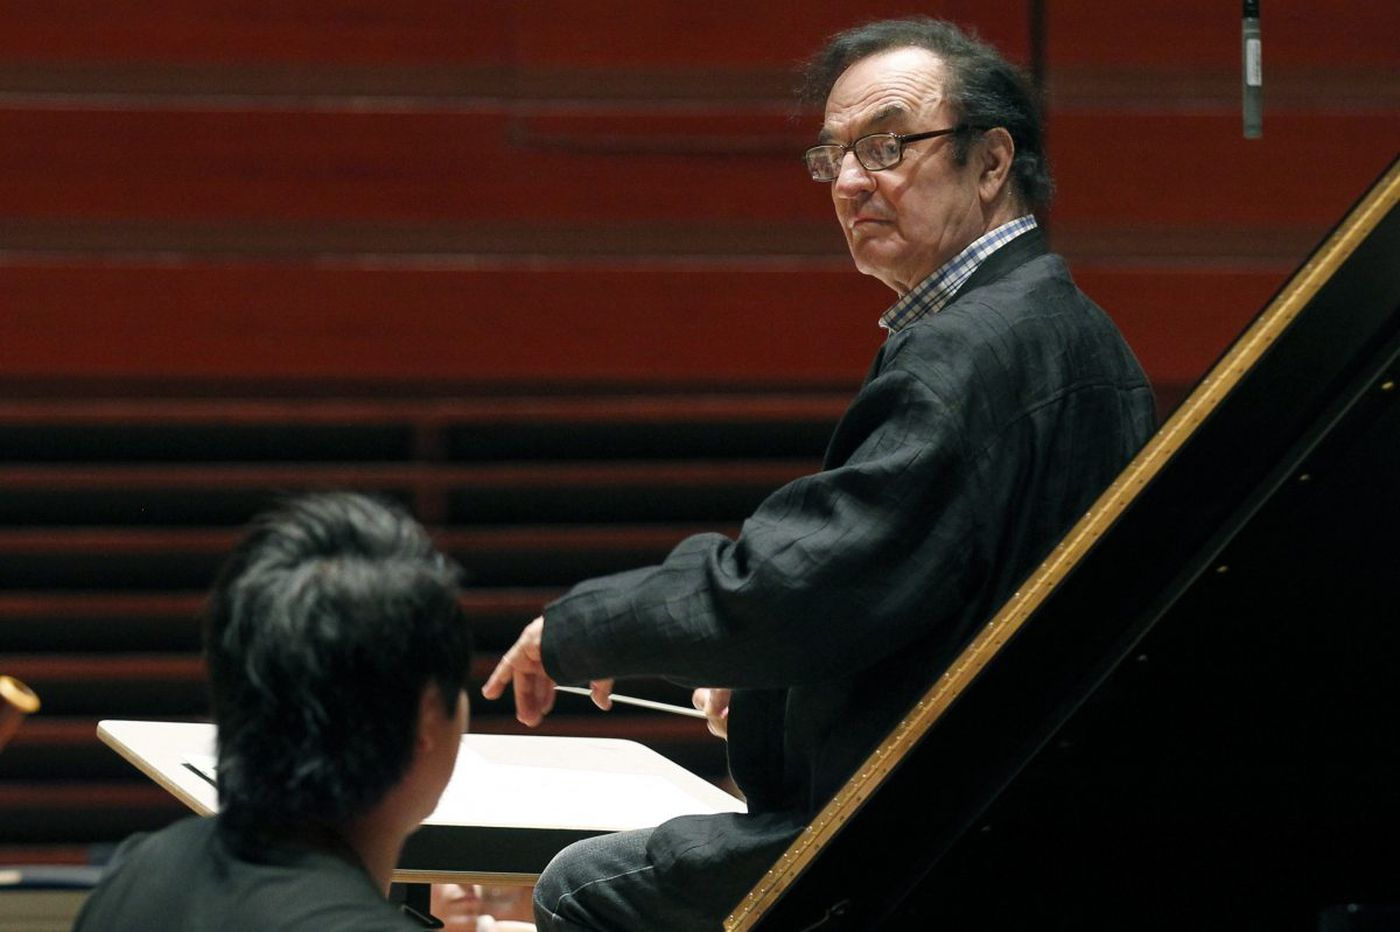 Philadelphia Orchestra guest conductor Dutoit denies 'forced physical contact'